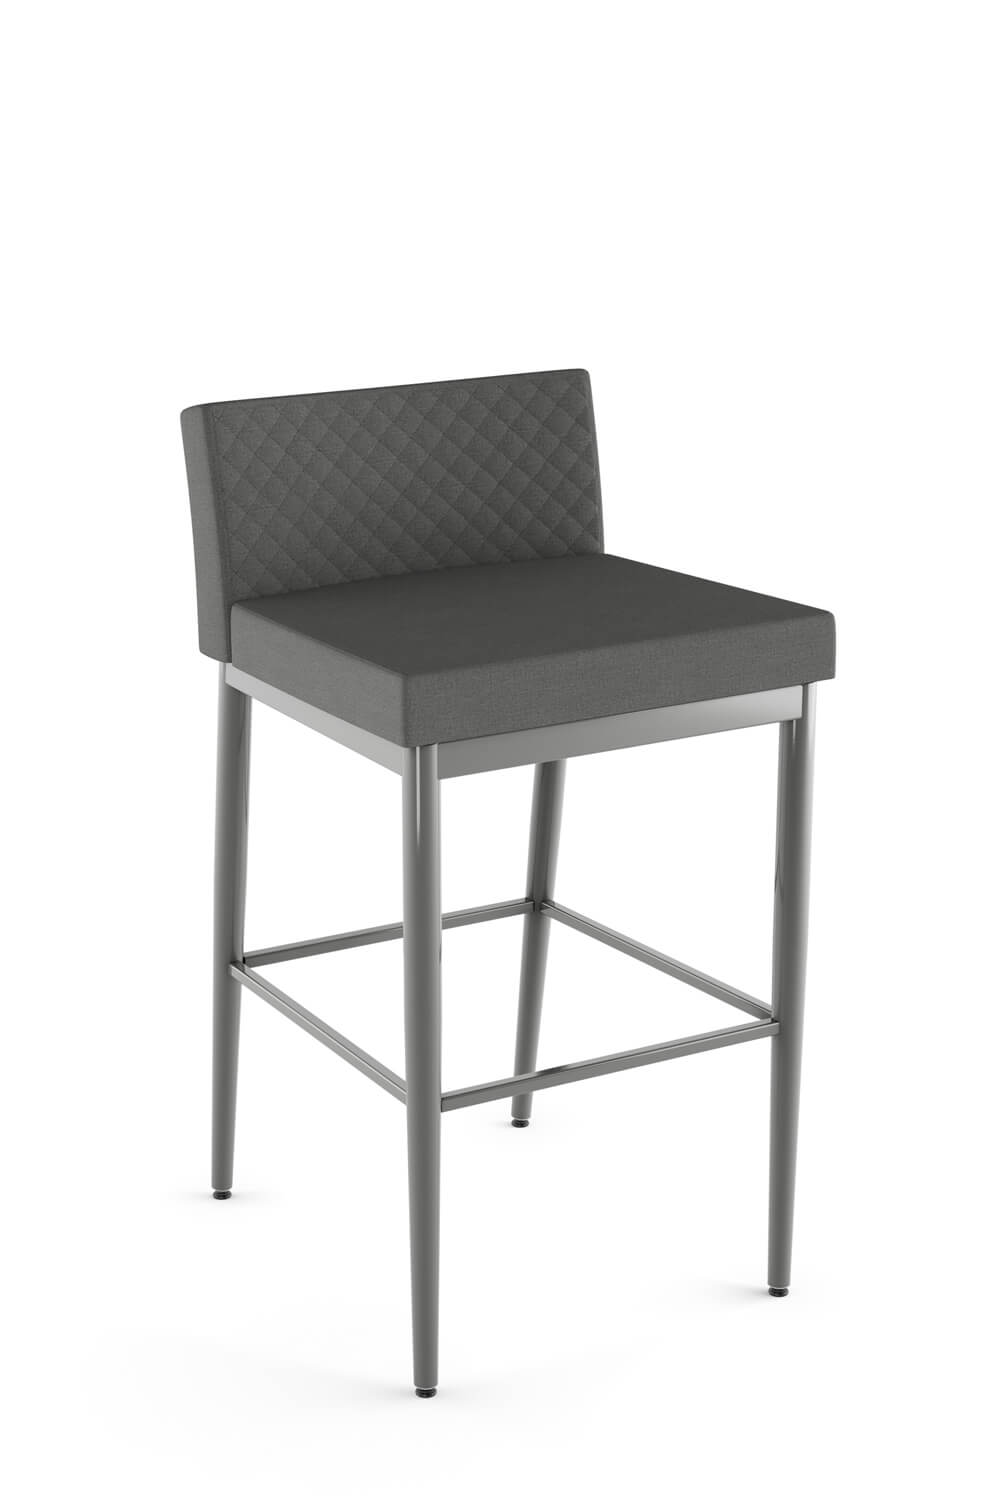 Admirable Hanson Modern Stool With Quilted Low Back Xl Caraccident5 Cool Chair Designs And Ideas Caraccident5Info